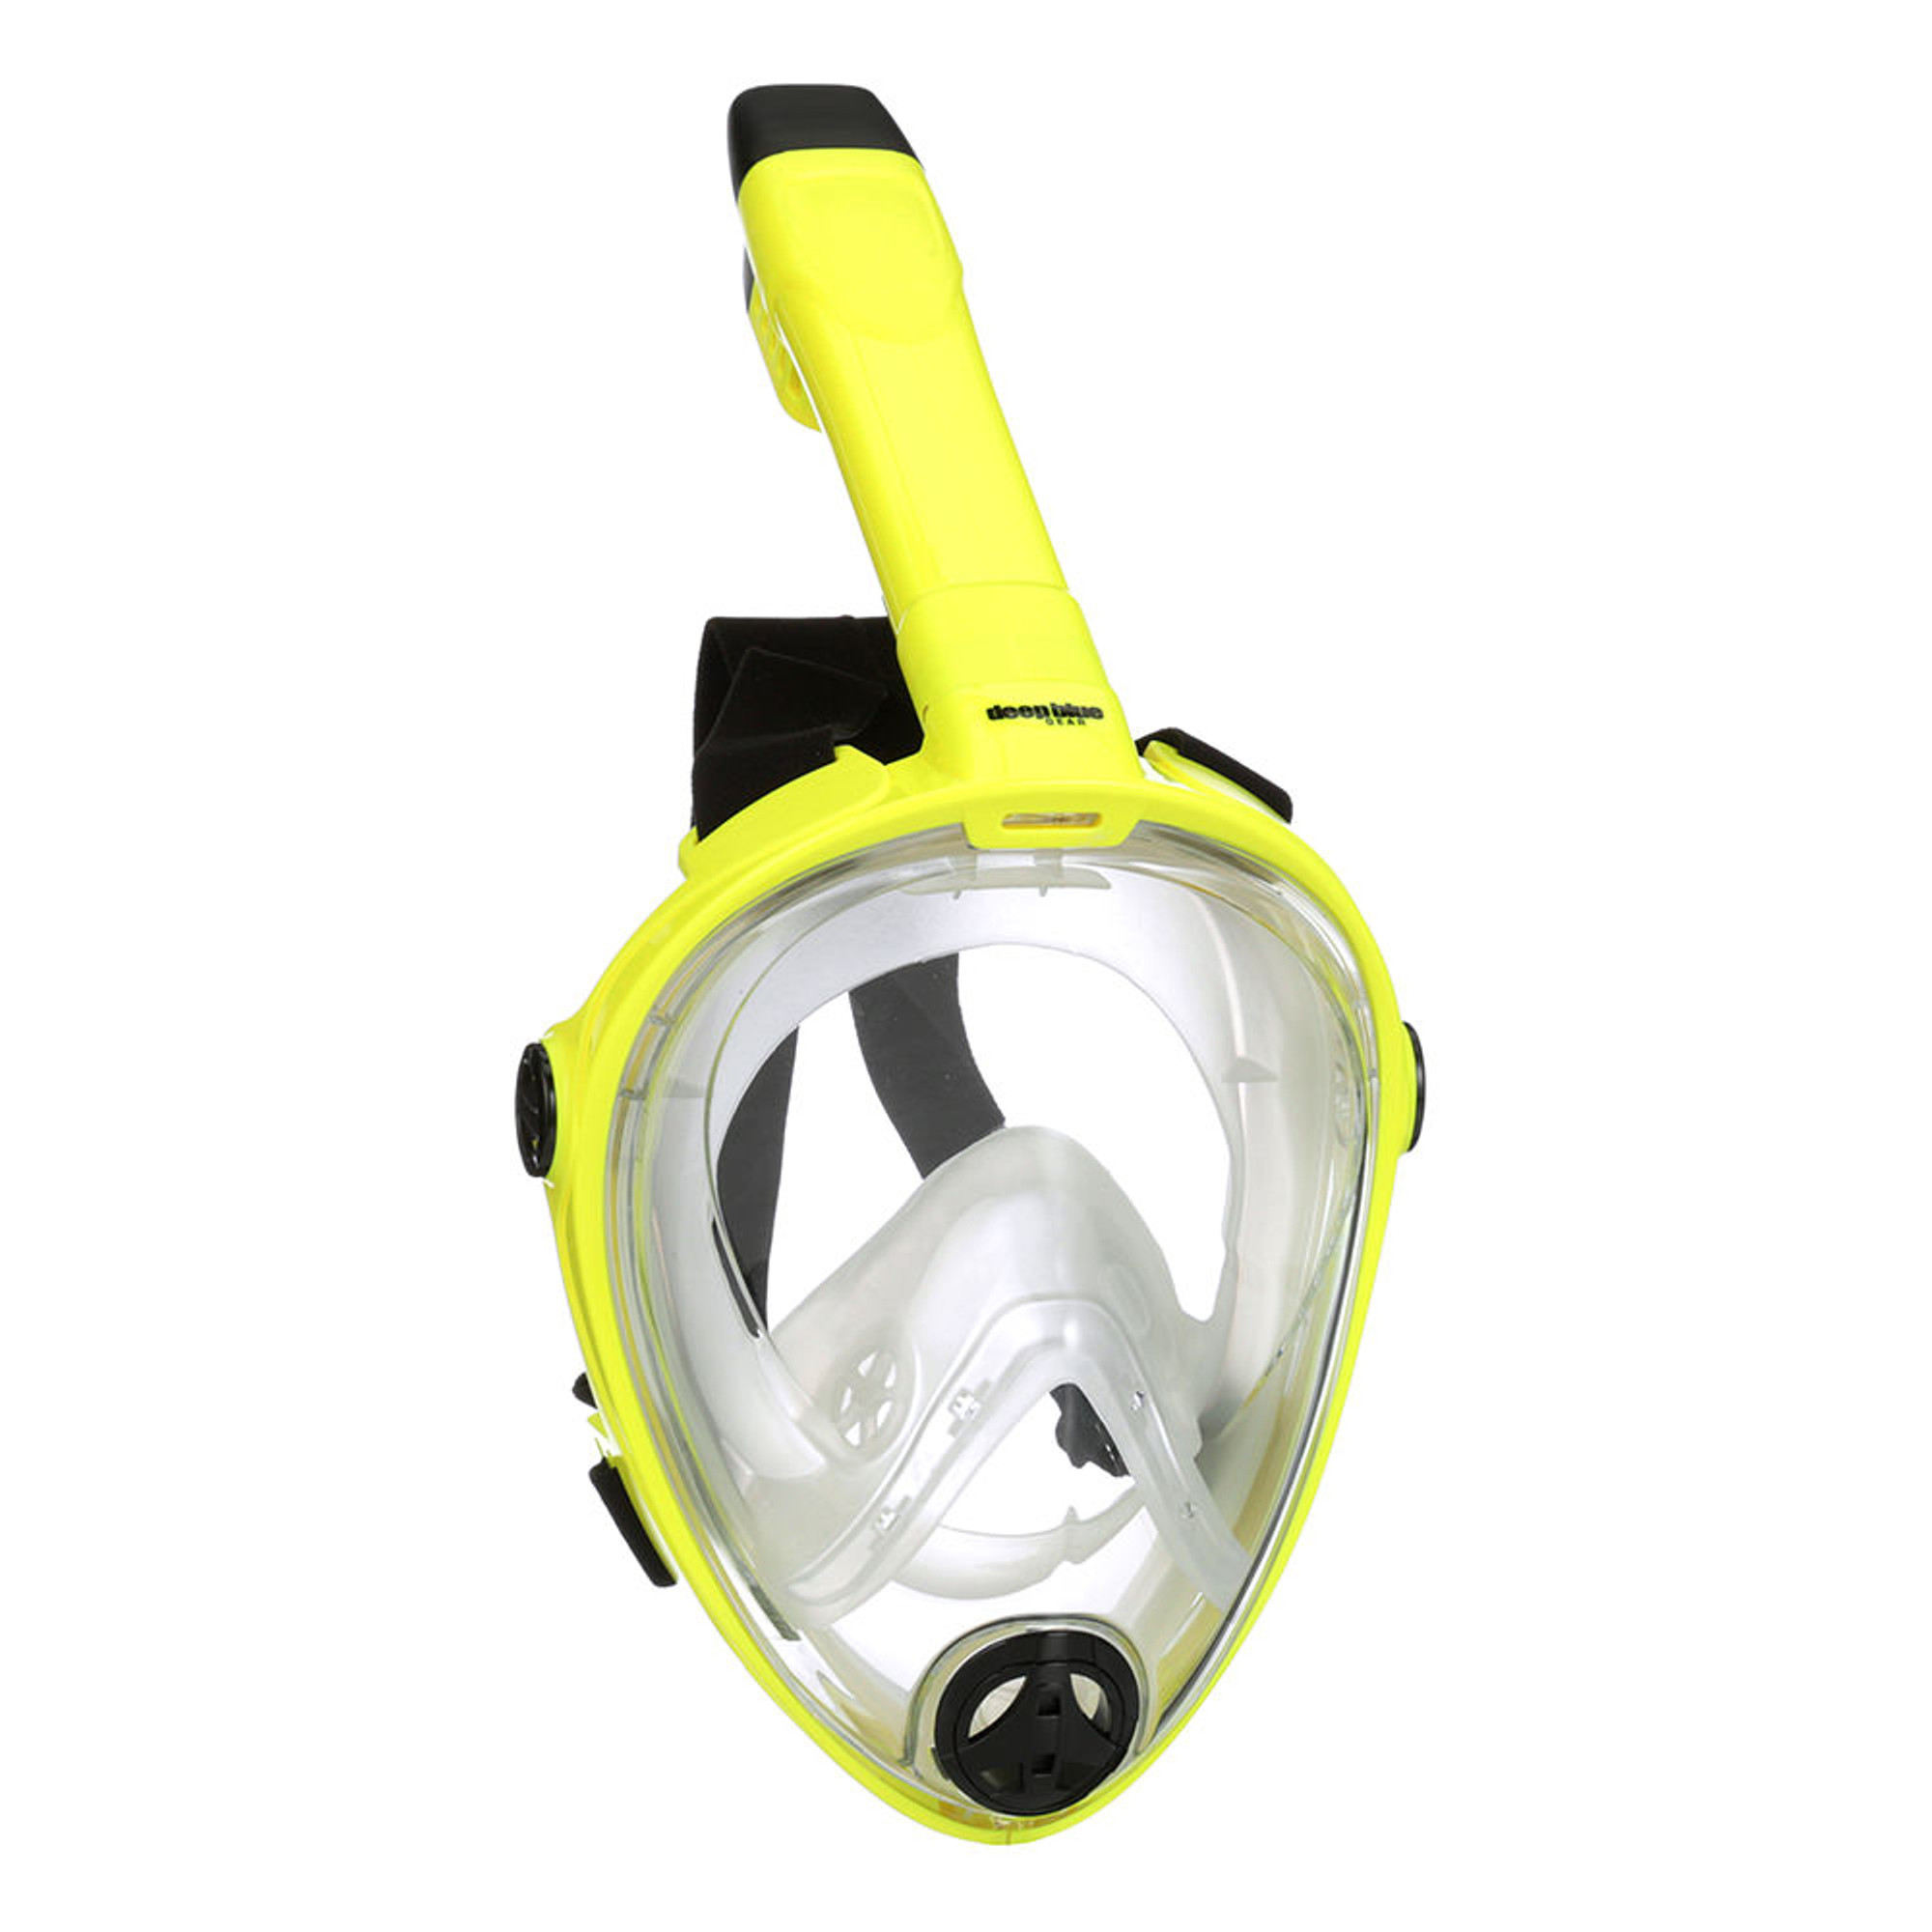 Buddy Full Face Mask - Adult Snorkeling Set